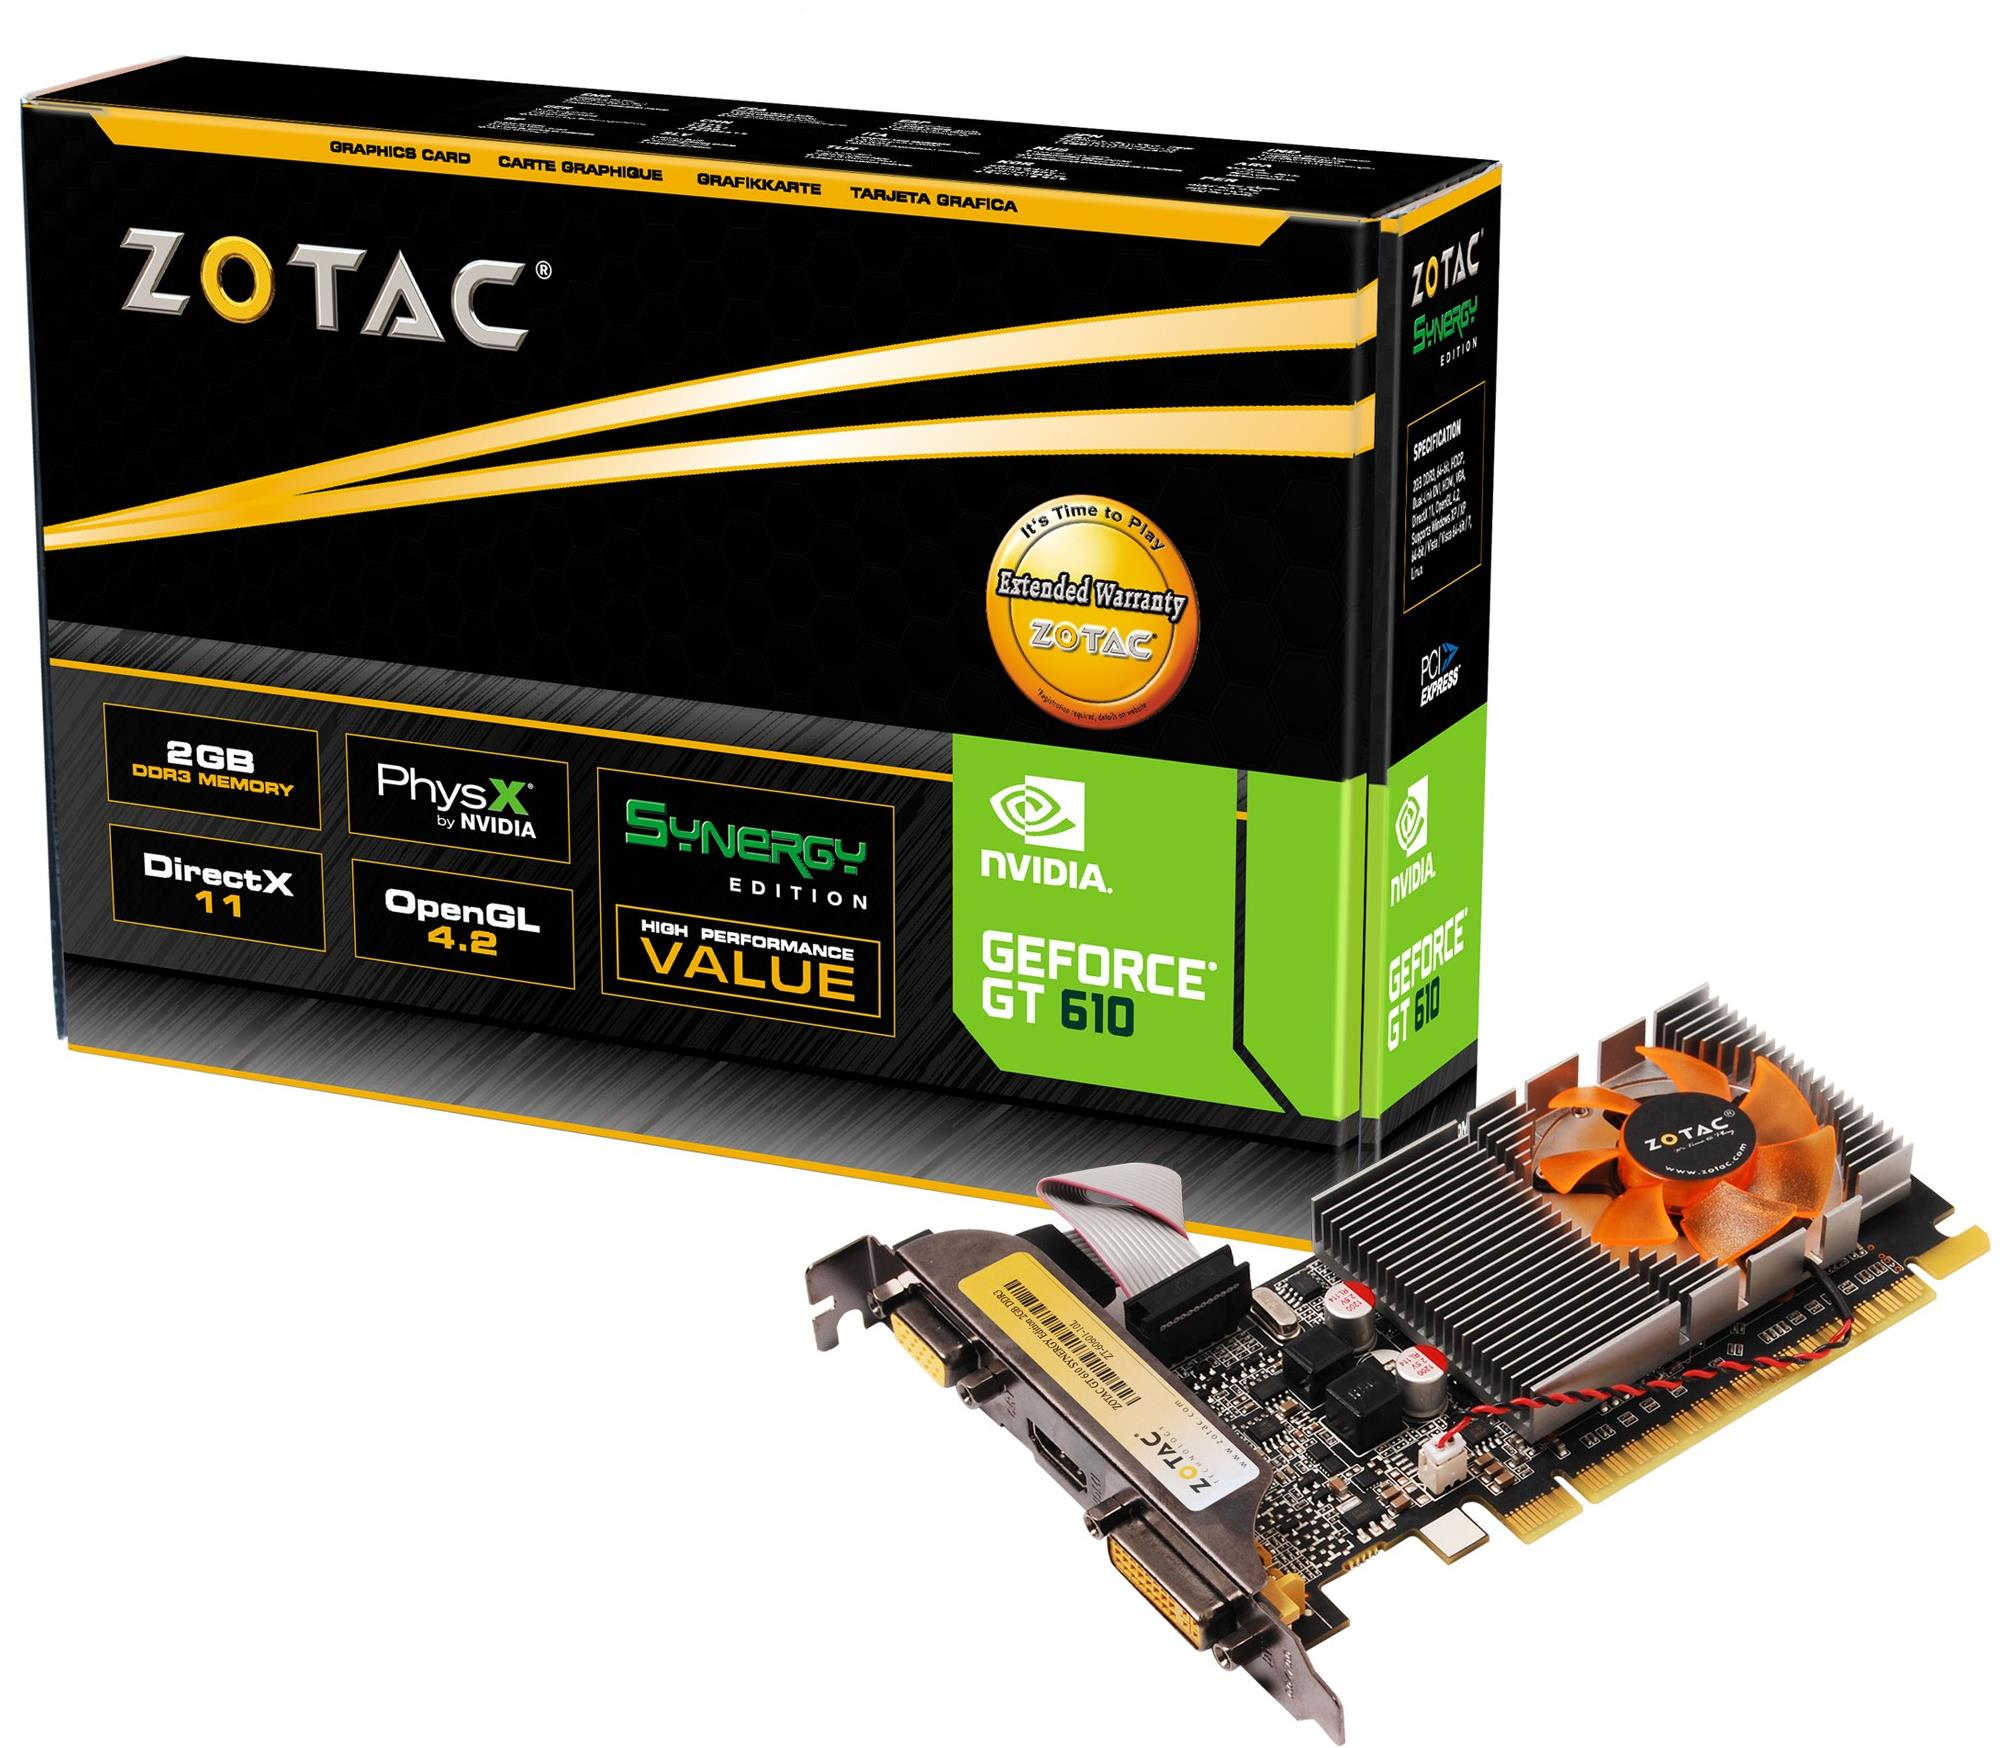 Zotac GeForce GT 610 PCI-Express Graphics Card